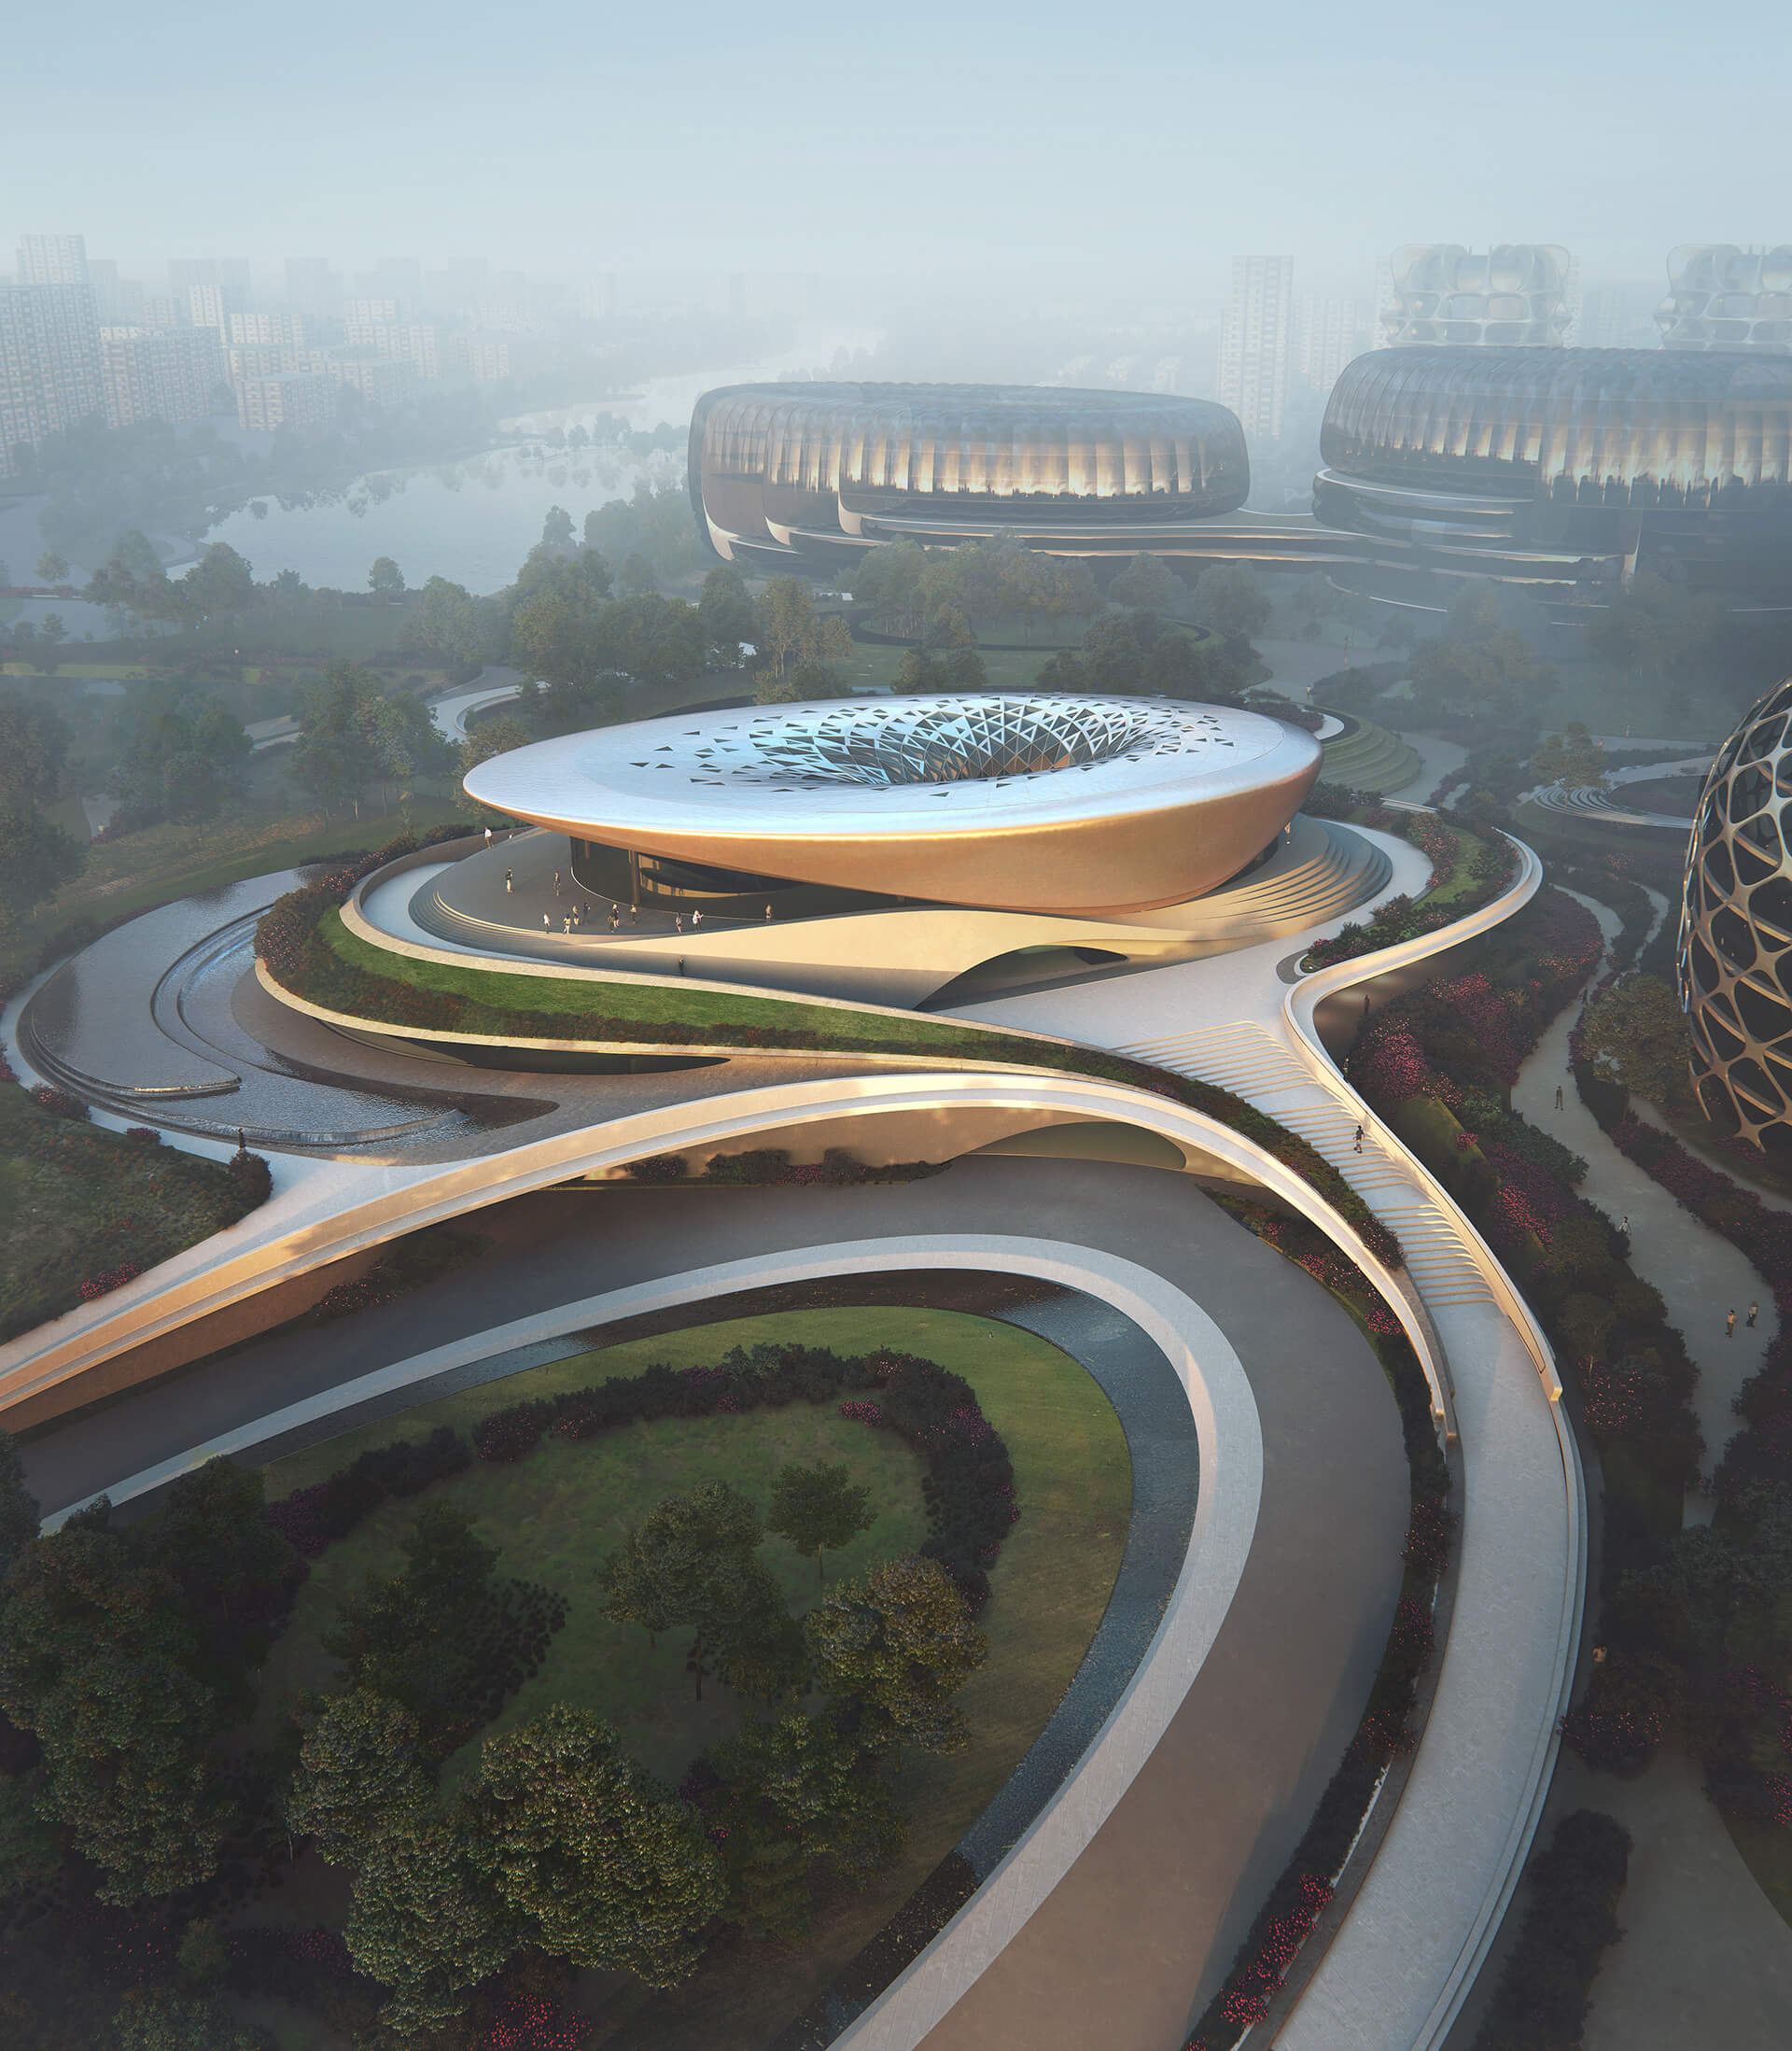 The undulating, circular form of the Start-Up exhibition and conference centre | Unicorn Island Masterplan| Zaha Hadid Architects | STIRworld